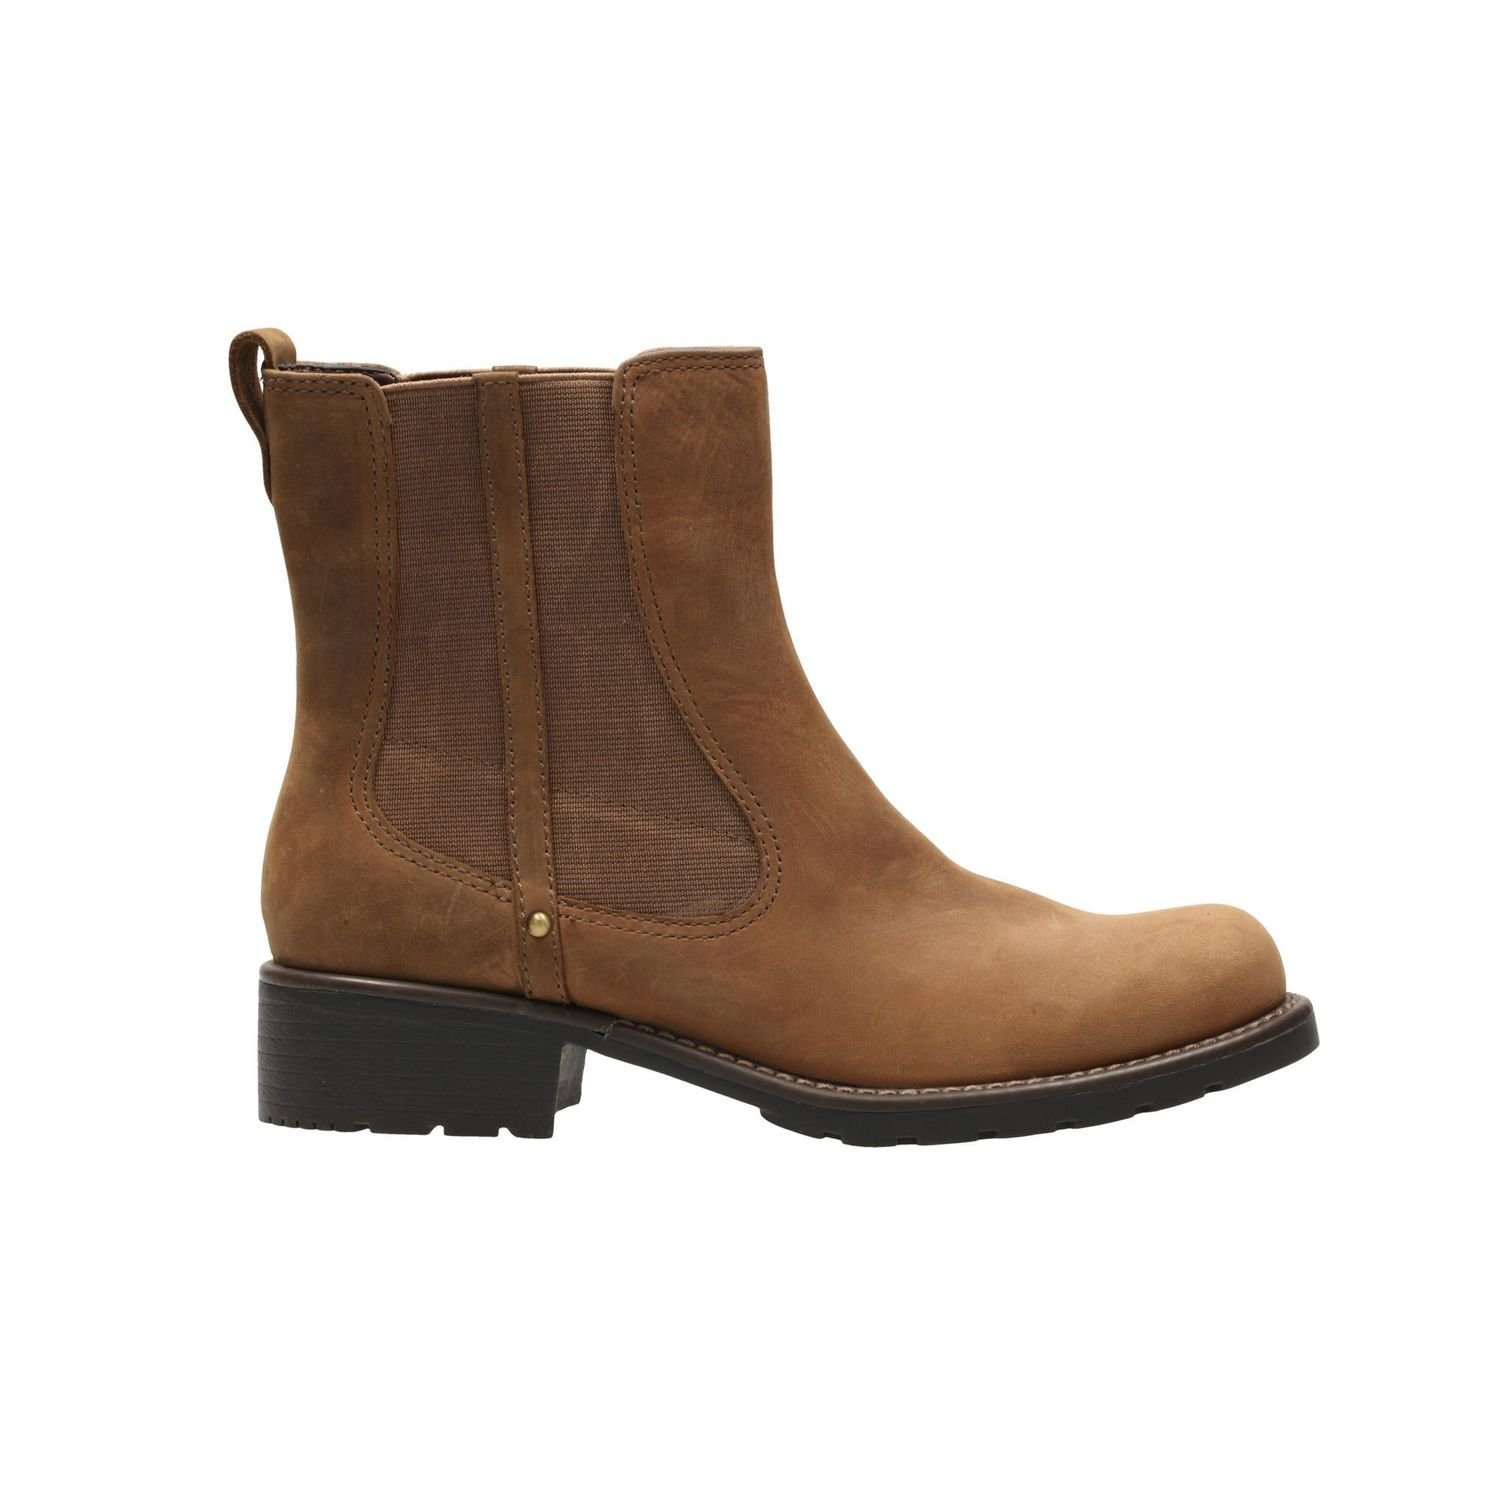 Botas Orinoco Club Marron Tabaco TN-2380086